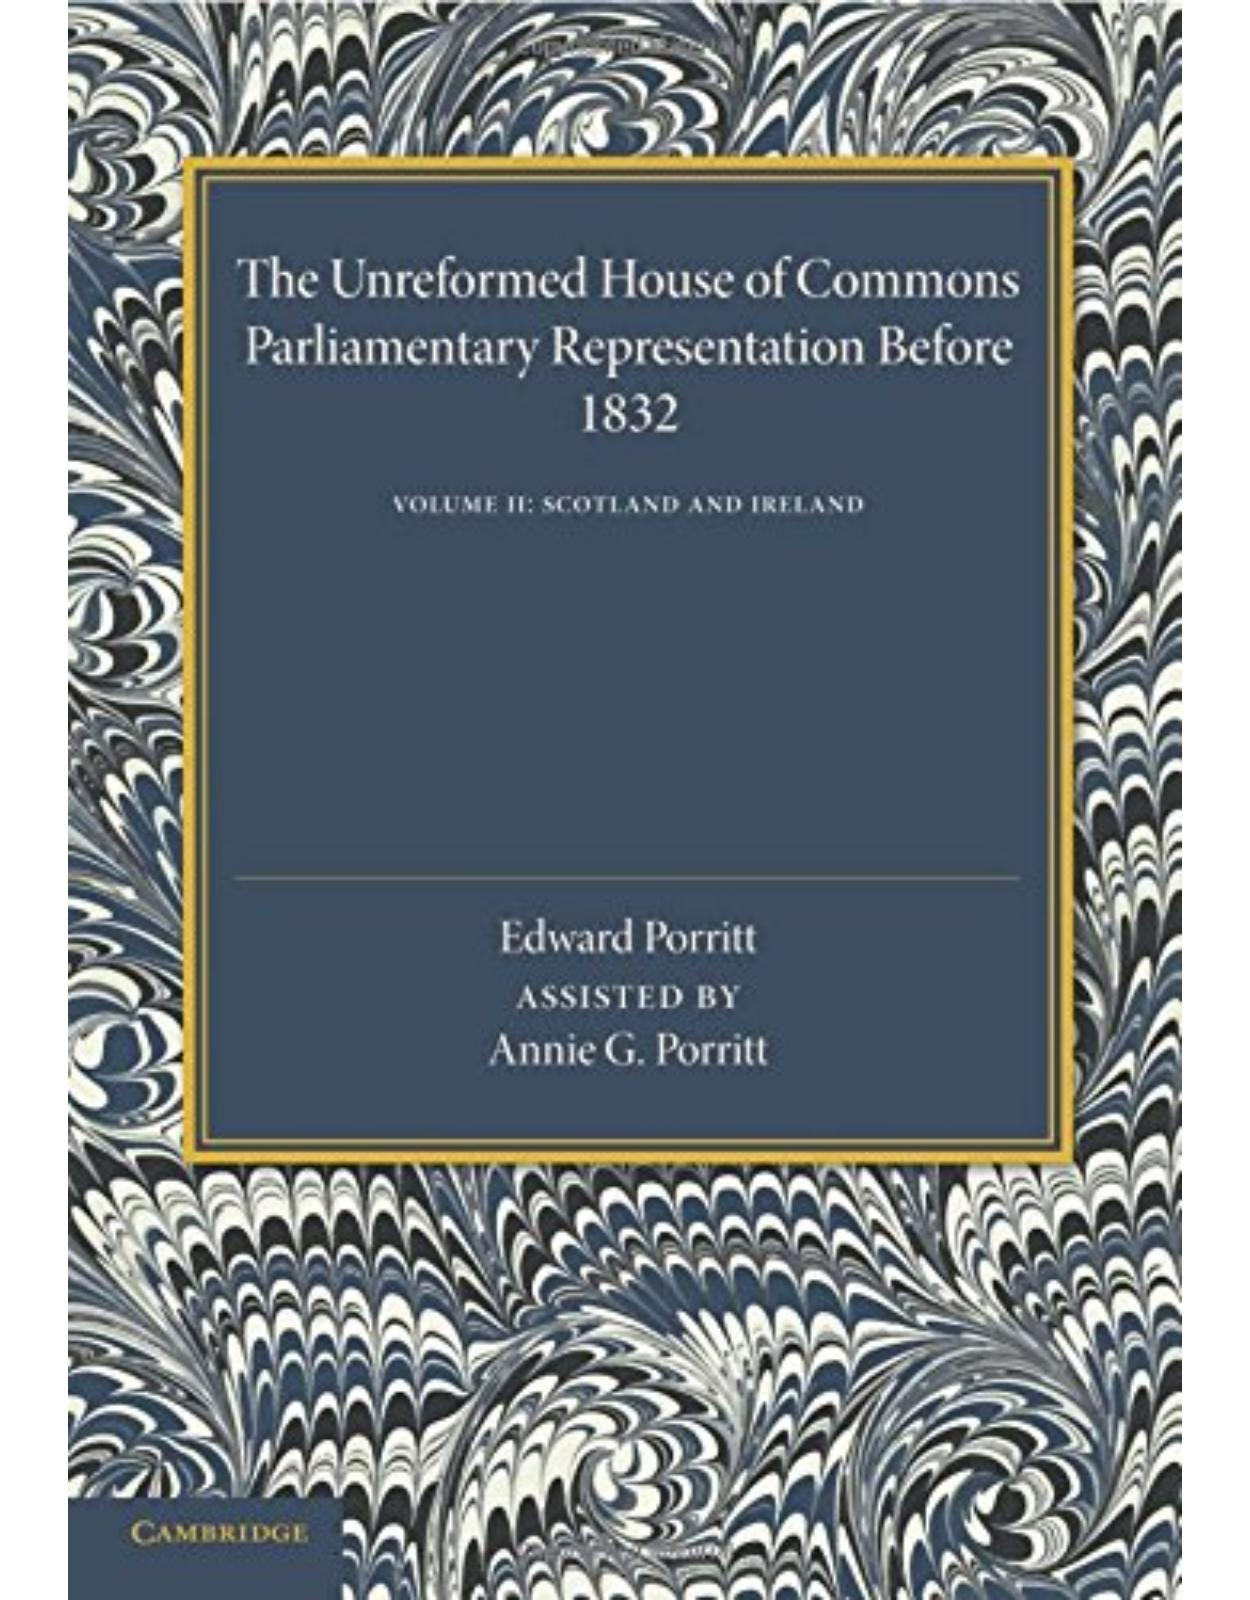 The Unreformed House of Commons: Volume 2, Scotland and Ireland: Parliamentary Representation Before 1831